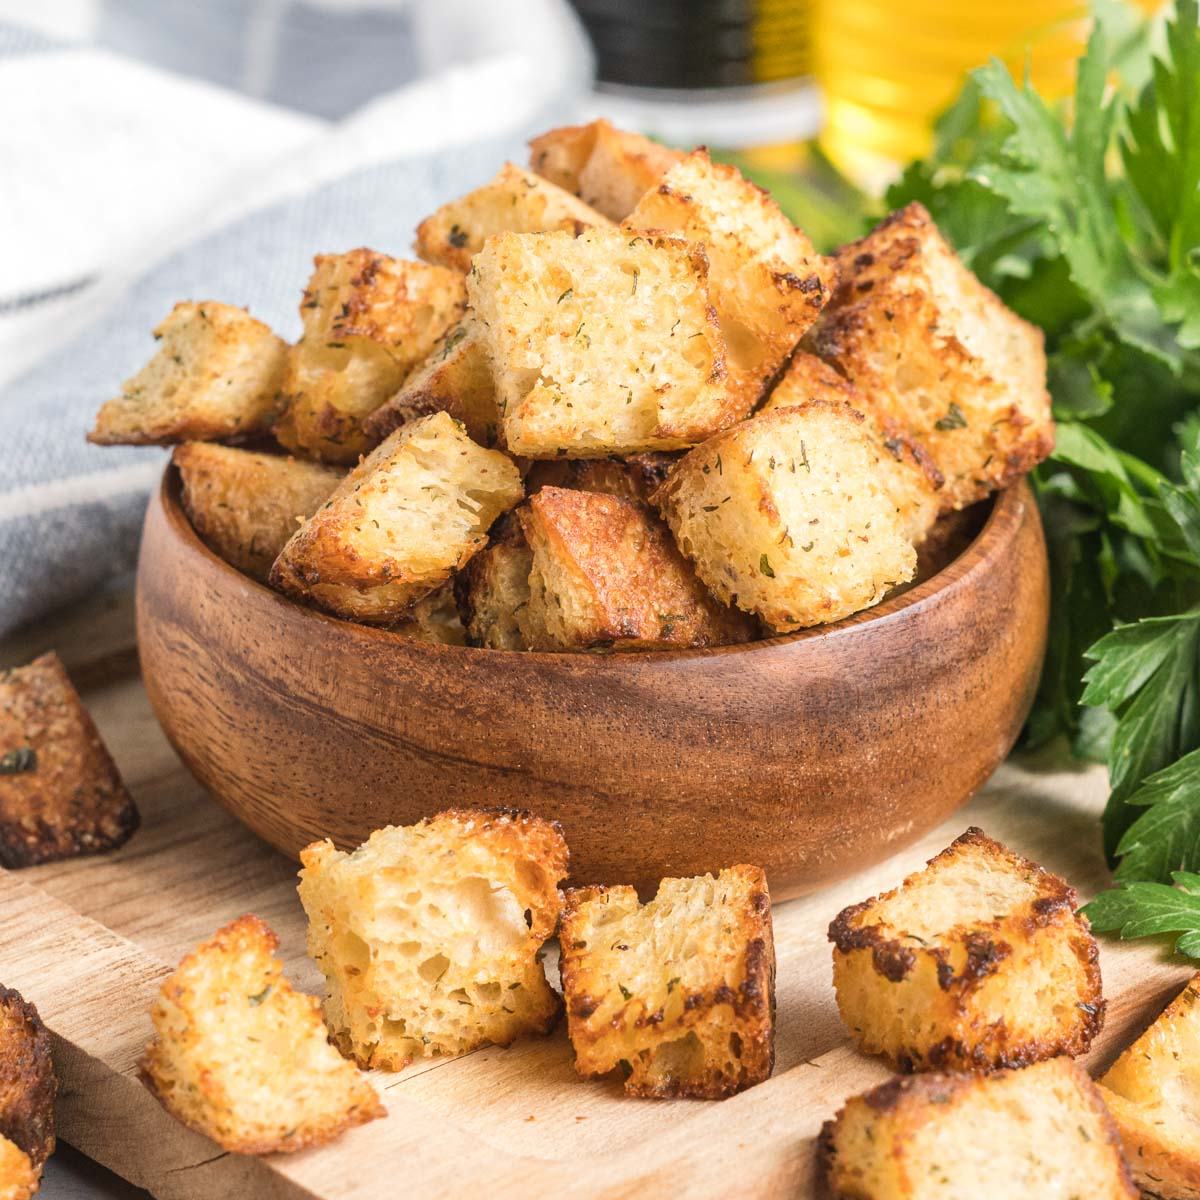 Croutons in a small wooden bowl.